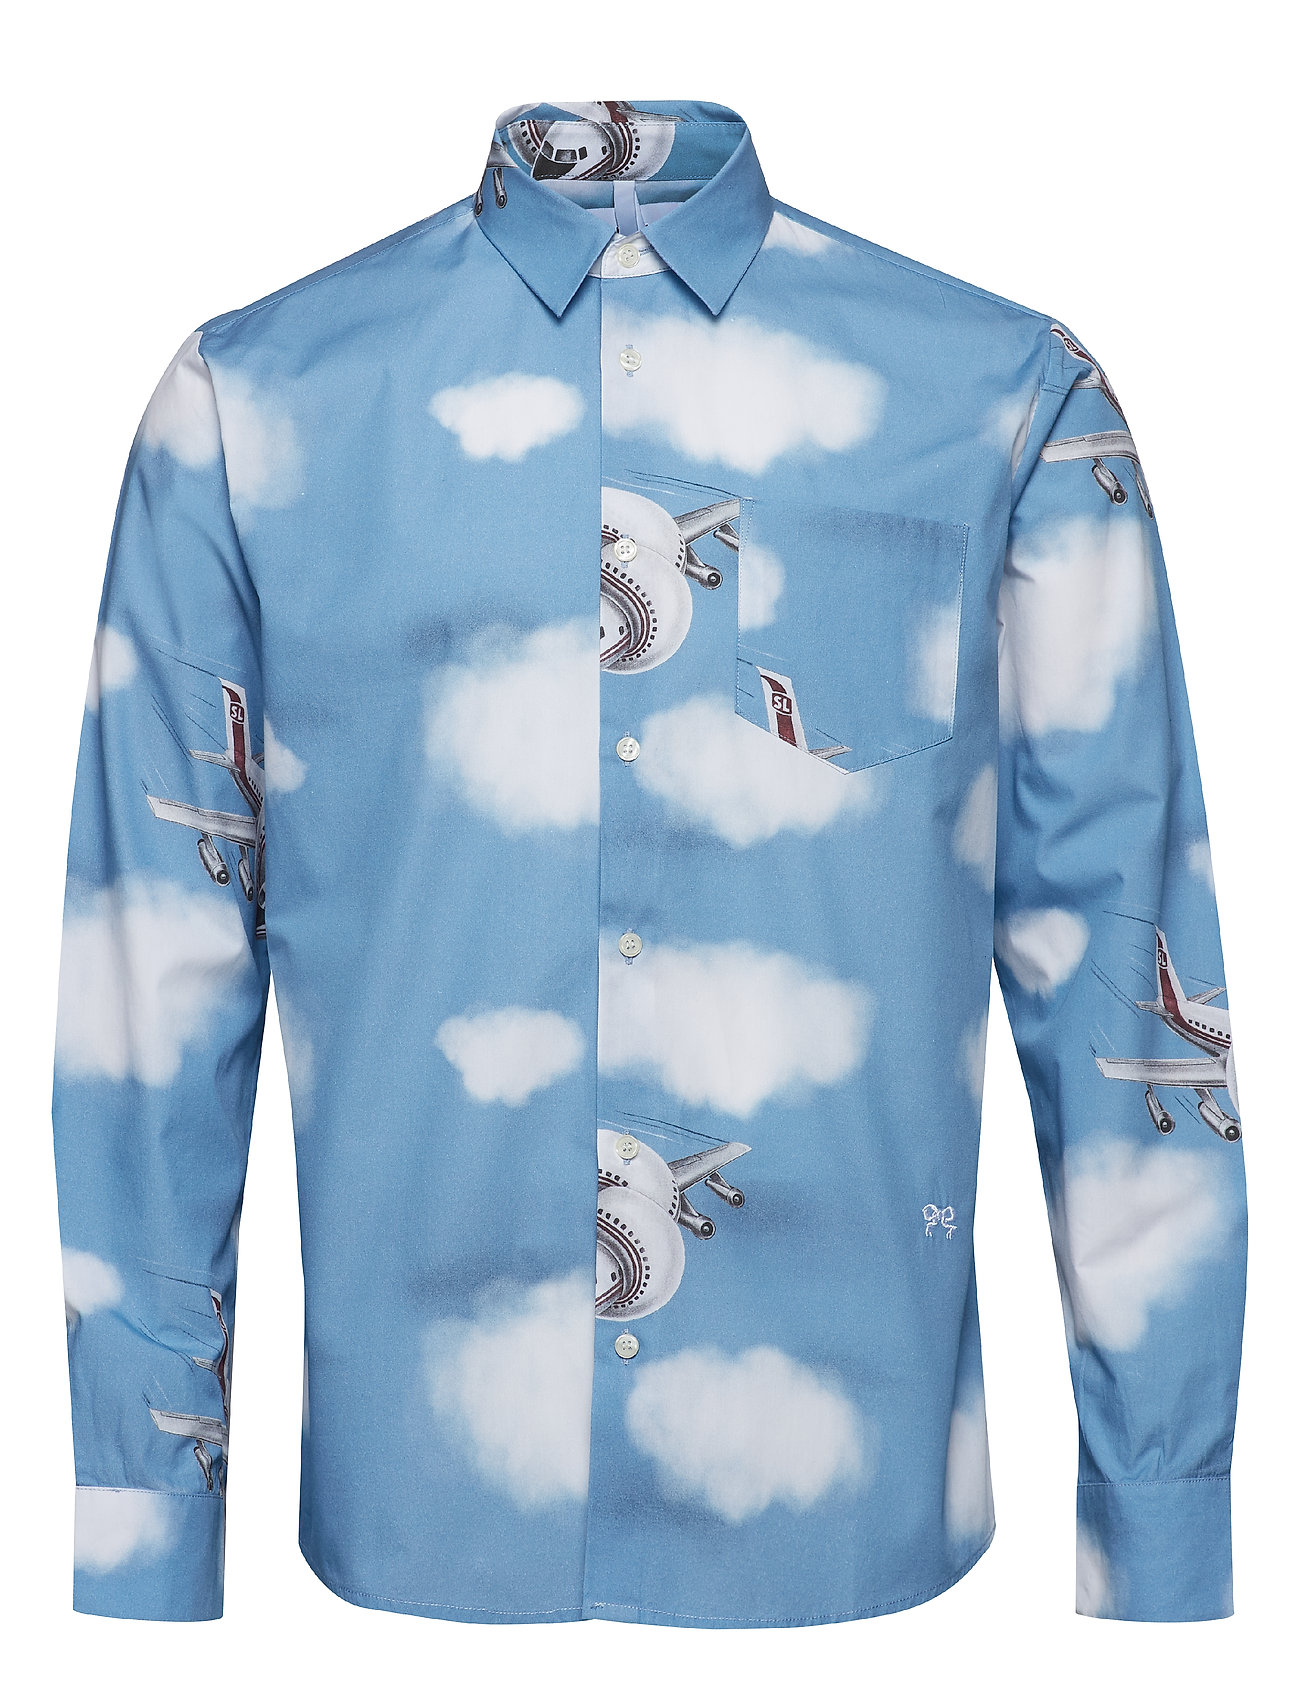 Soulland KUJAN SHIRT W. ALL OVER PRINT - BLUE - BLUE